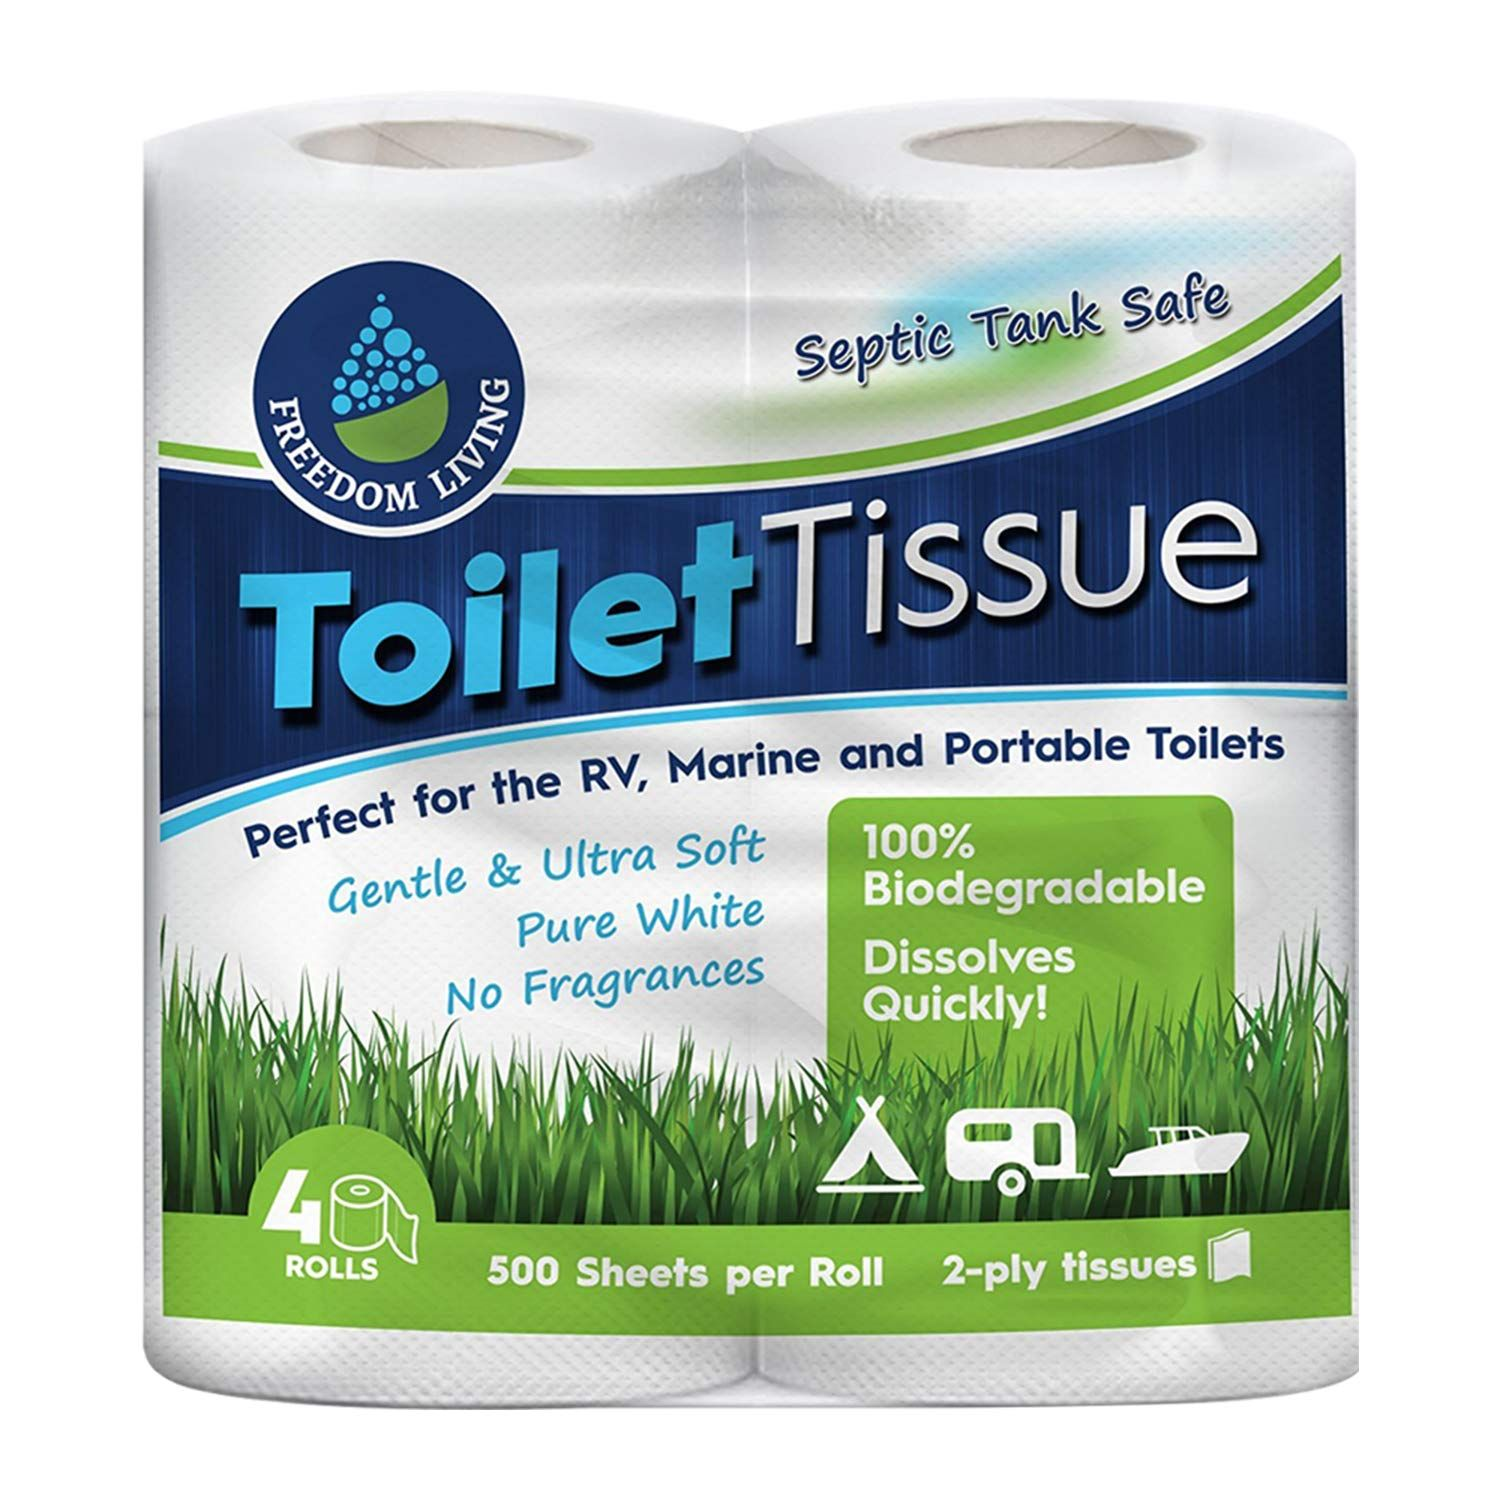 Septic Tank Safe Toilet Tissue 2 Ply 4 Rolls For Rv Camping Biodegradable Products Septic Tank Septic System